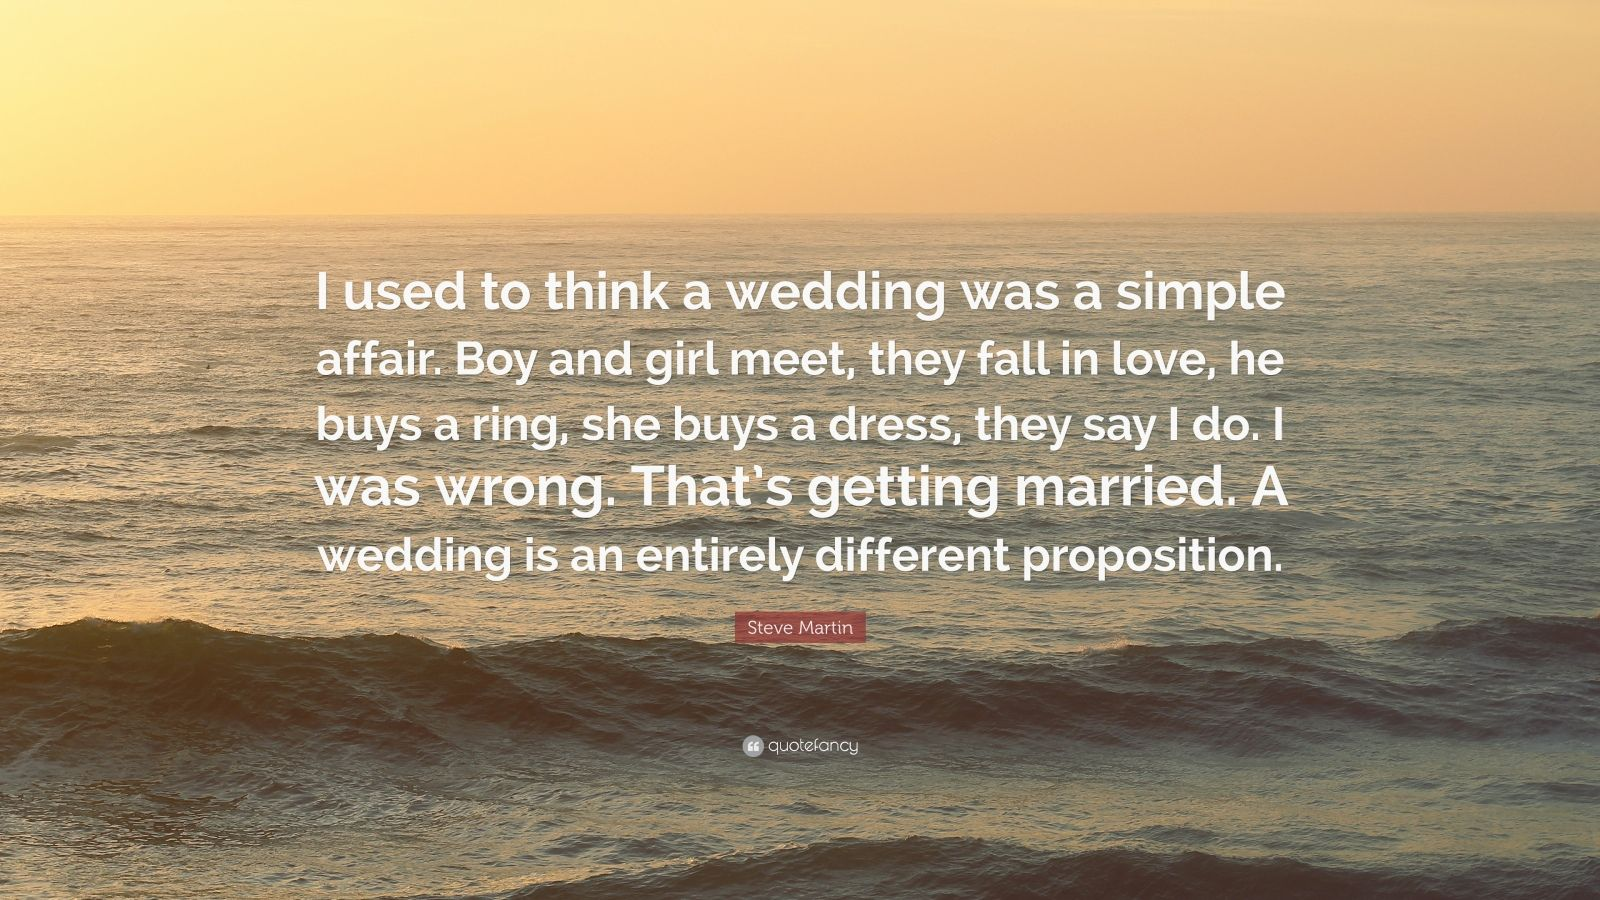 """Steve Martin Quote: """"I used to think a wedding was a simple affair. Boy and girl meet, they fall in love, he buys a ring, she buys a dress, they say I do. I was wrong. That's getting married. A wedding is an entirely different proposition."""""""